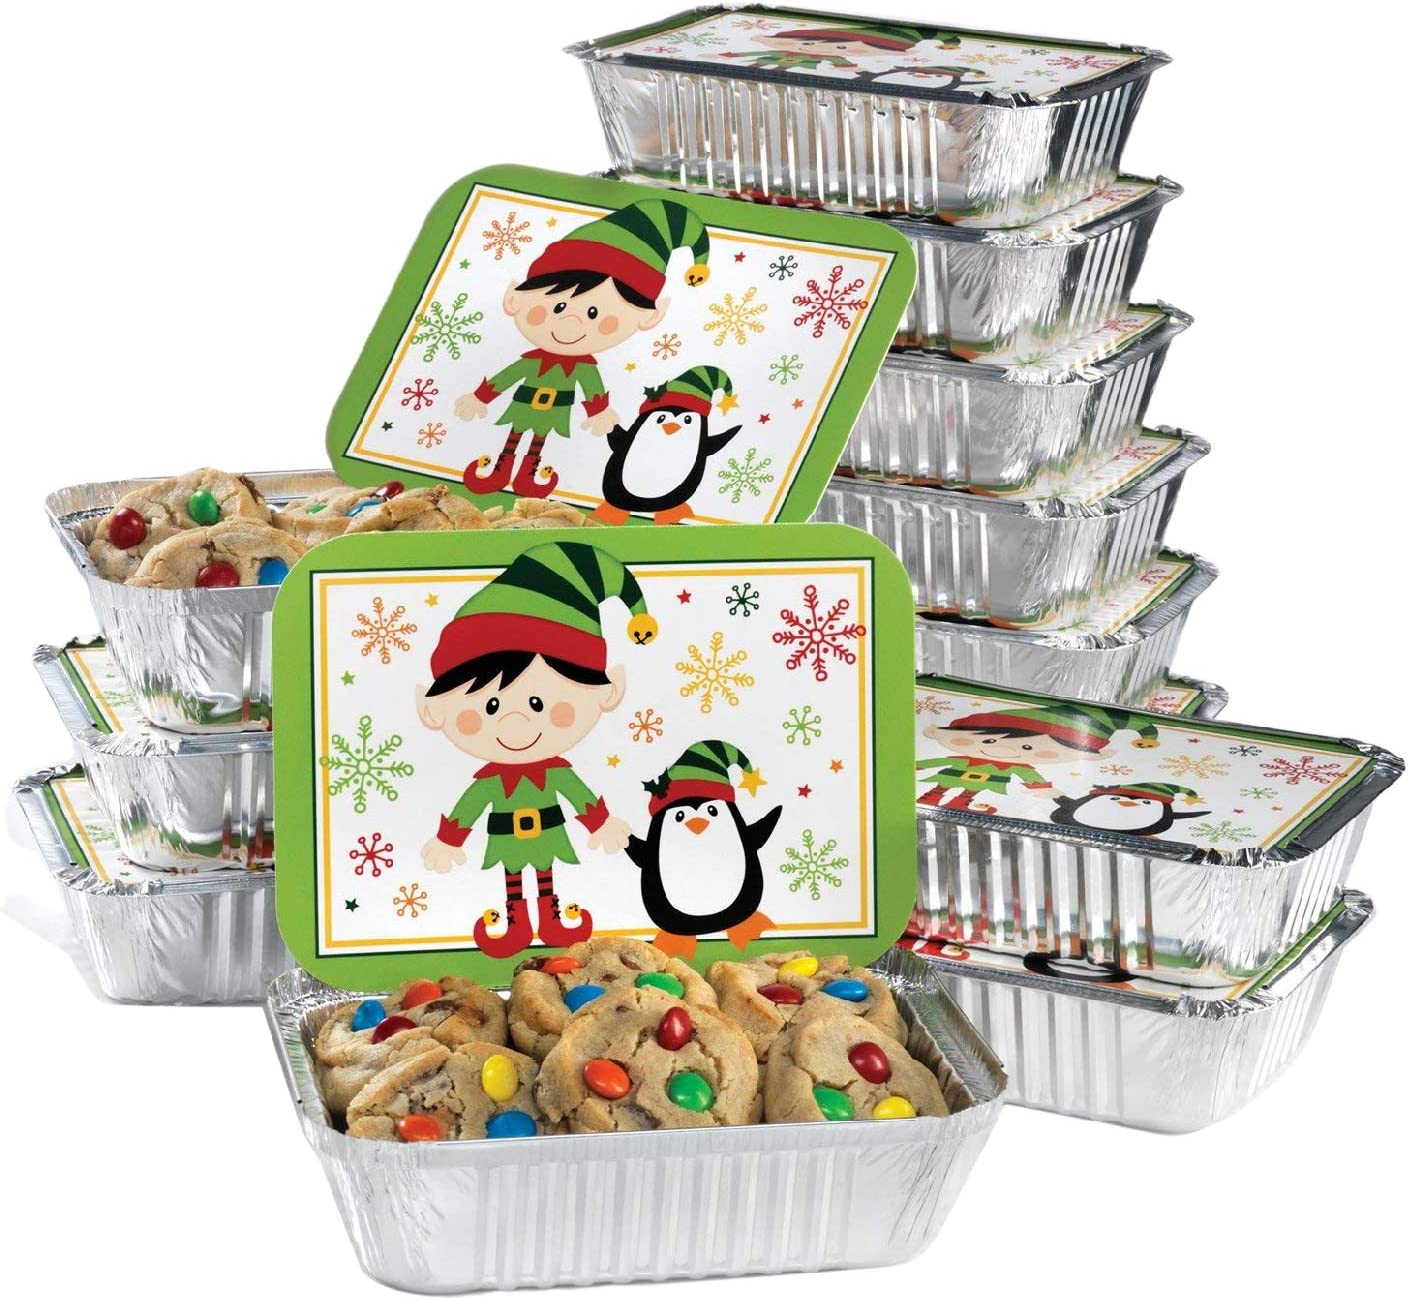 Gia's Kitchen Christmas Cookie Tins, 24 Piece, Set of 12 Foil Pans with Lids, Perfect Cookie Tins with Lids for Gift Giving- Elf Foil Container Rectangular